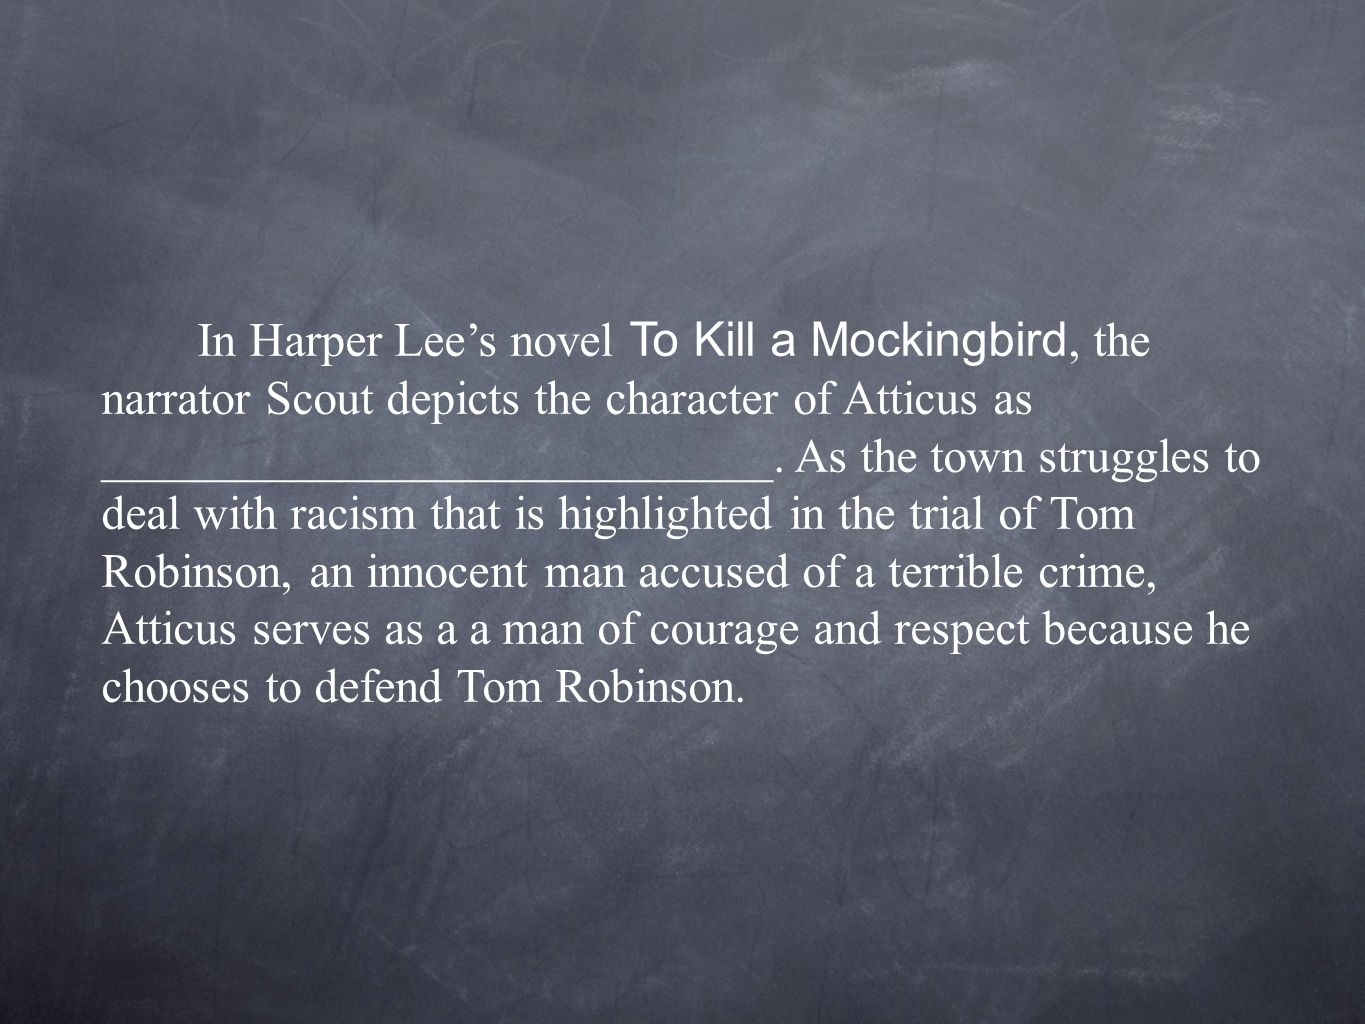 analytical essay on racism in to kill a mockingbird Get free homework help on harper lee's to kill a mockingbird: book summary, chapter summary and analysis, quotes, essays, and character analysis courtesy of cliffsnotes in to kill a mockingbird, author harper lee uses memorable characters to explore civil rights and racism in the segregated southern united states of the 1930s.